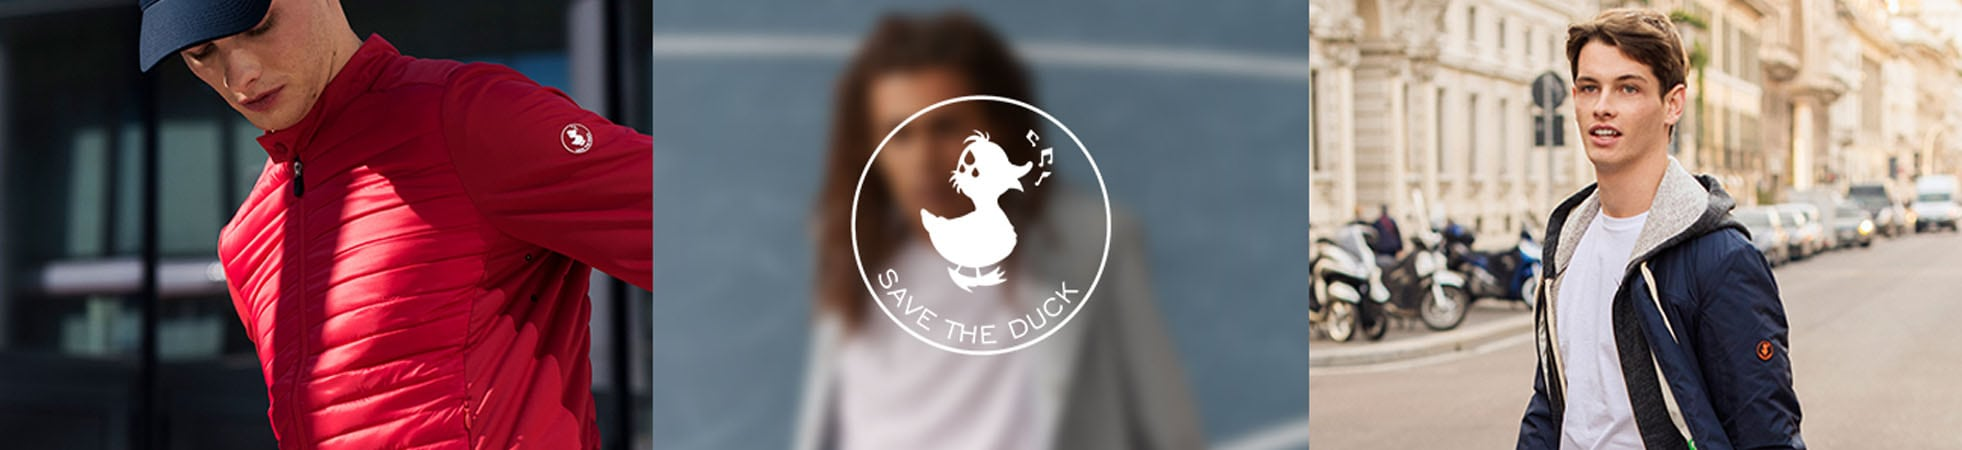 Save the Duck Jackets and Coats